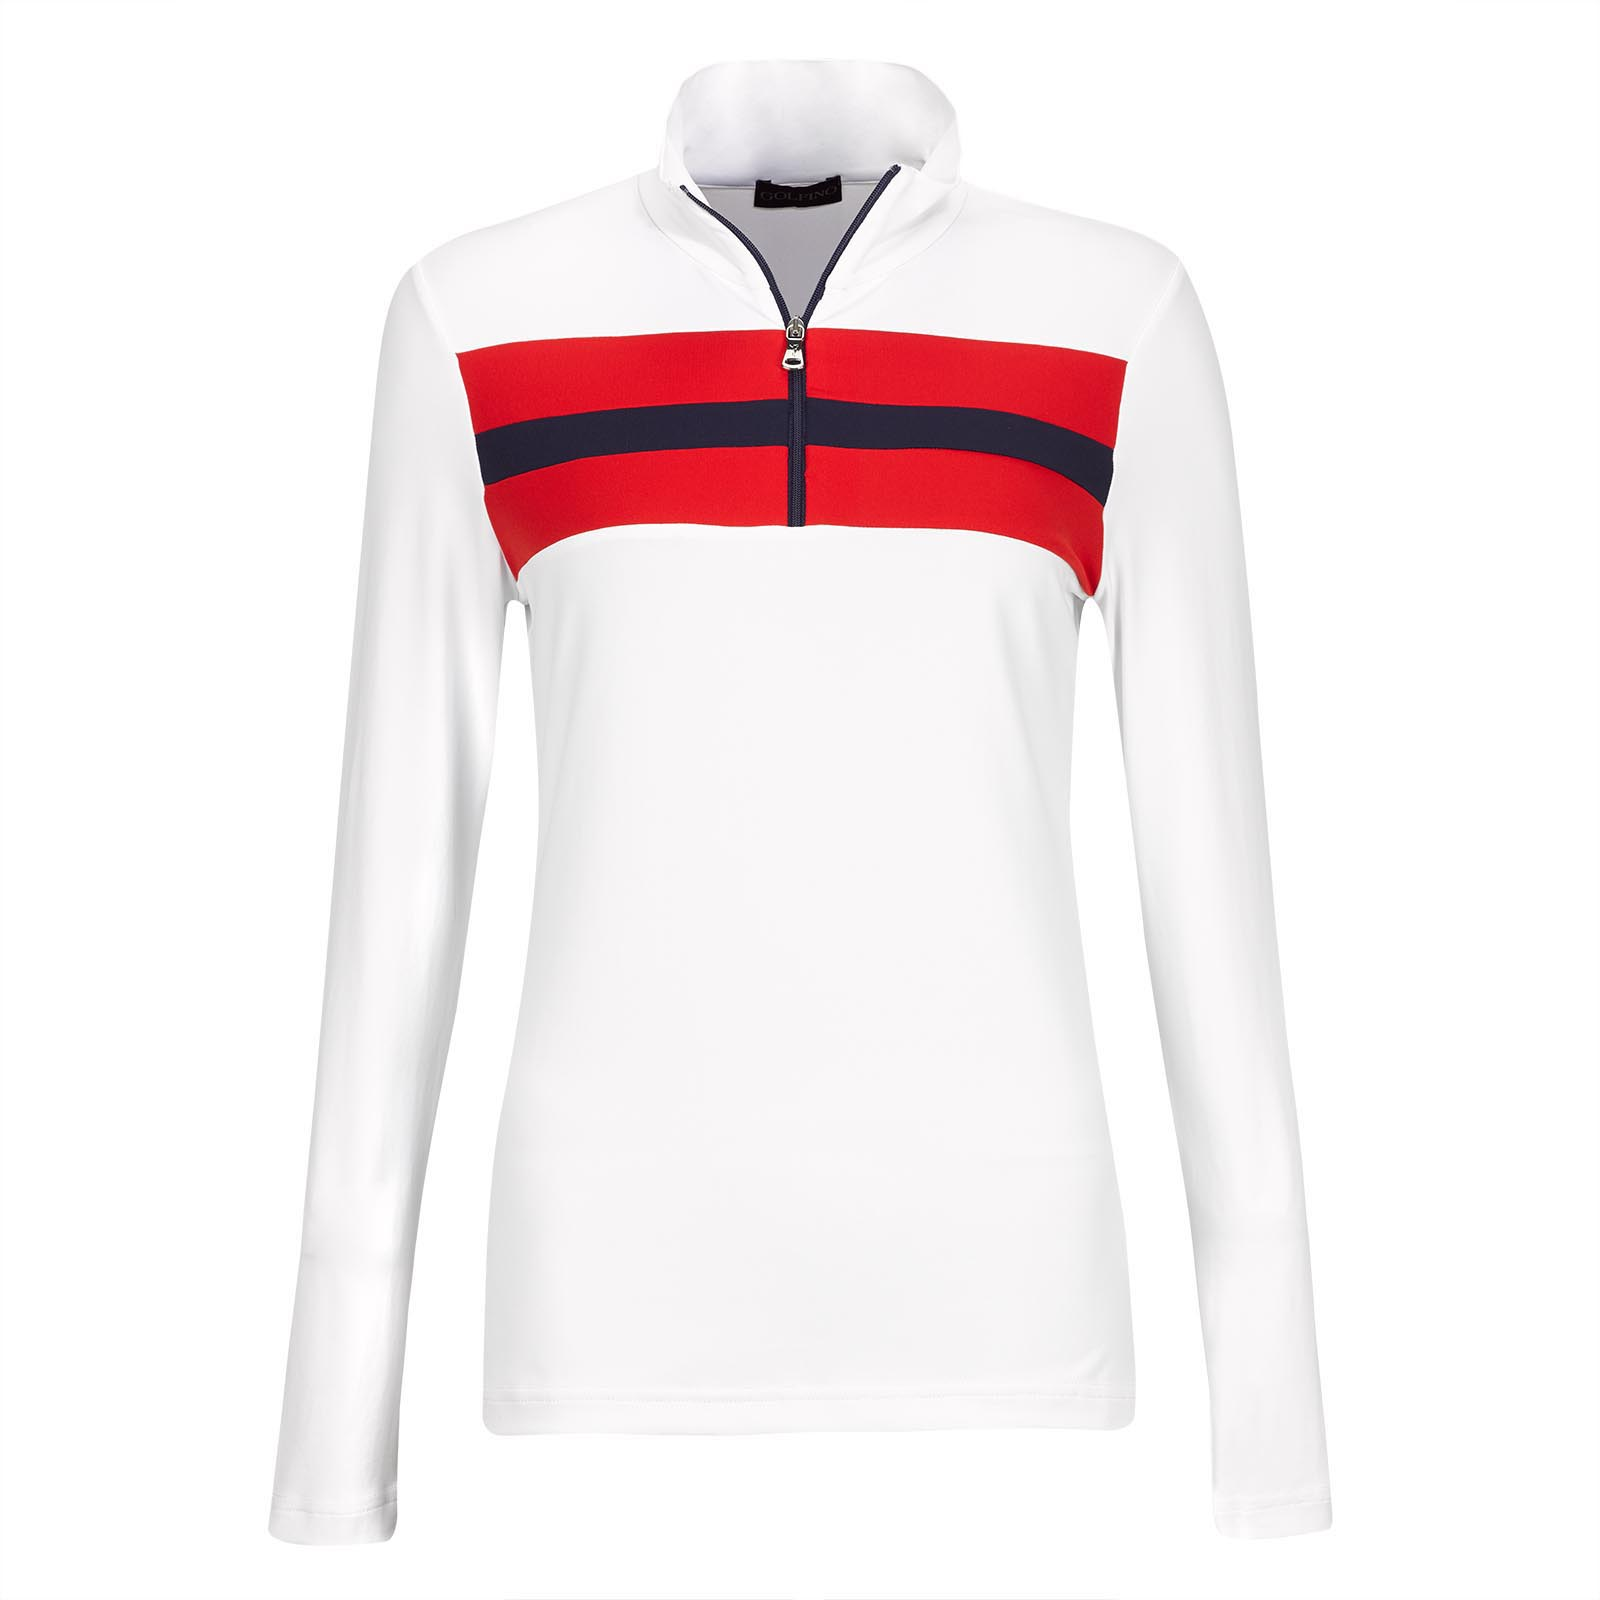 Damen Longsleeve Retro Sport Golf-Troyer Dry Comfort in Slim Fit